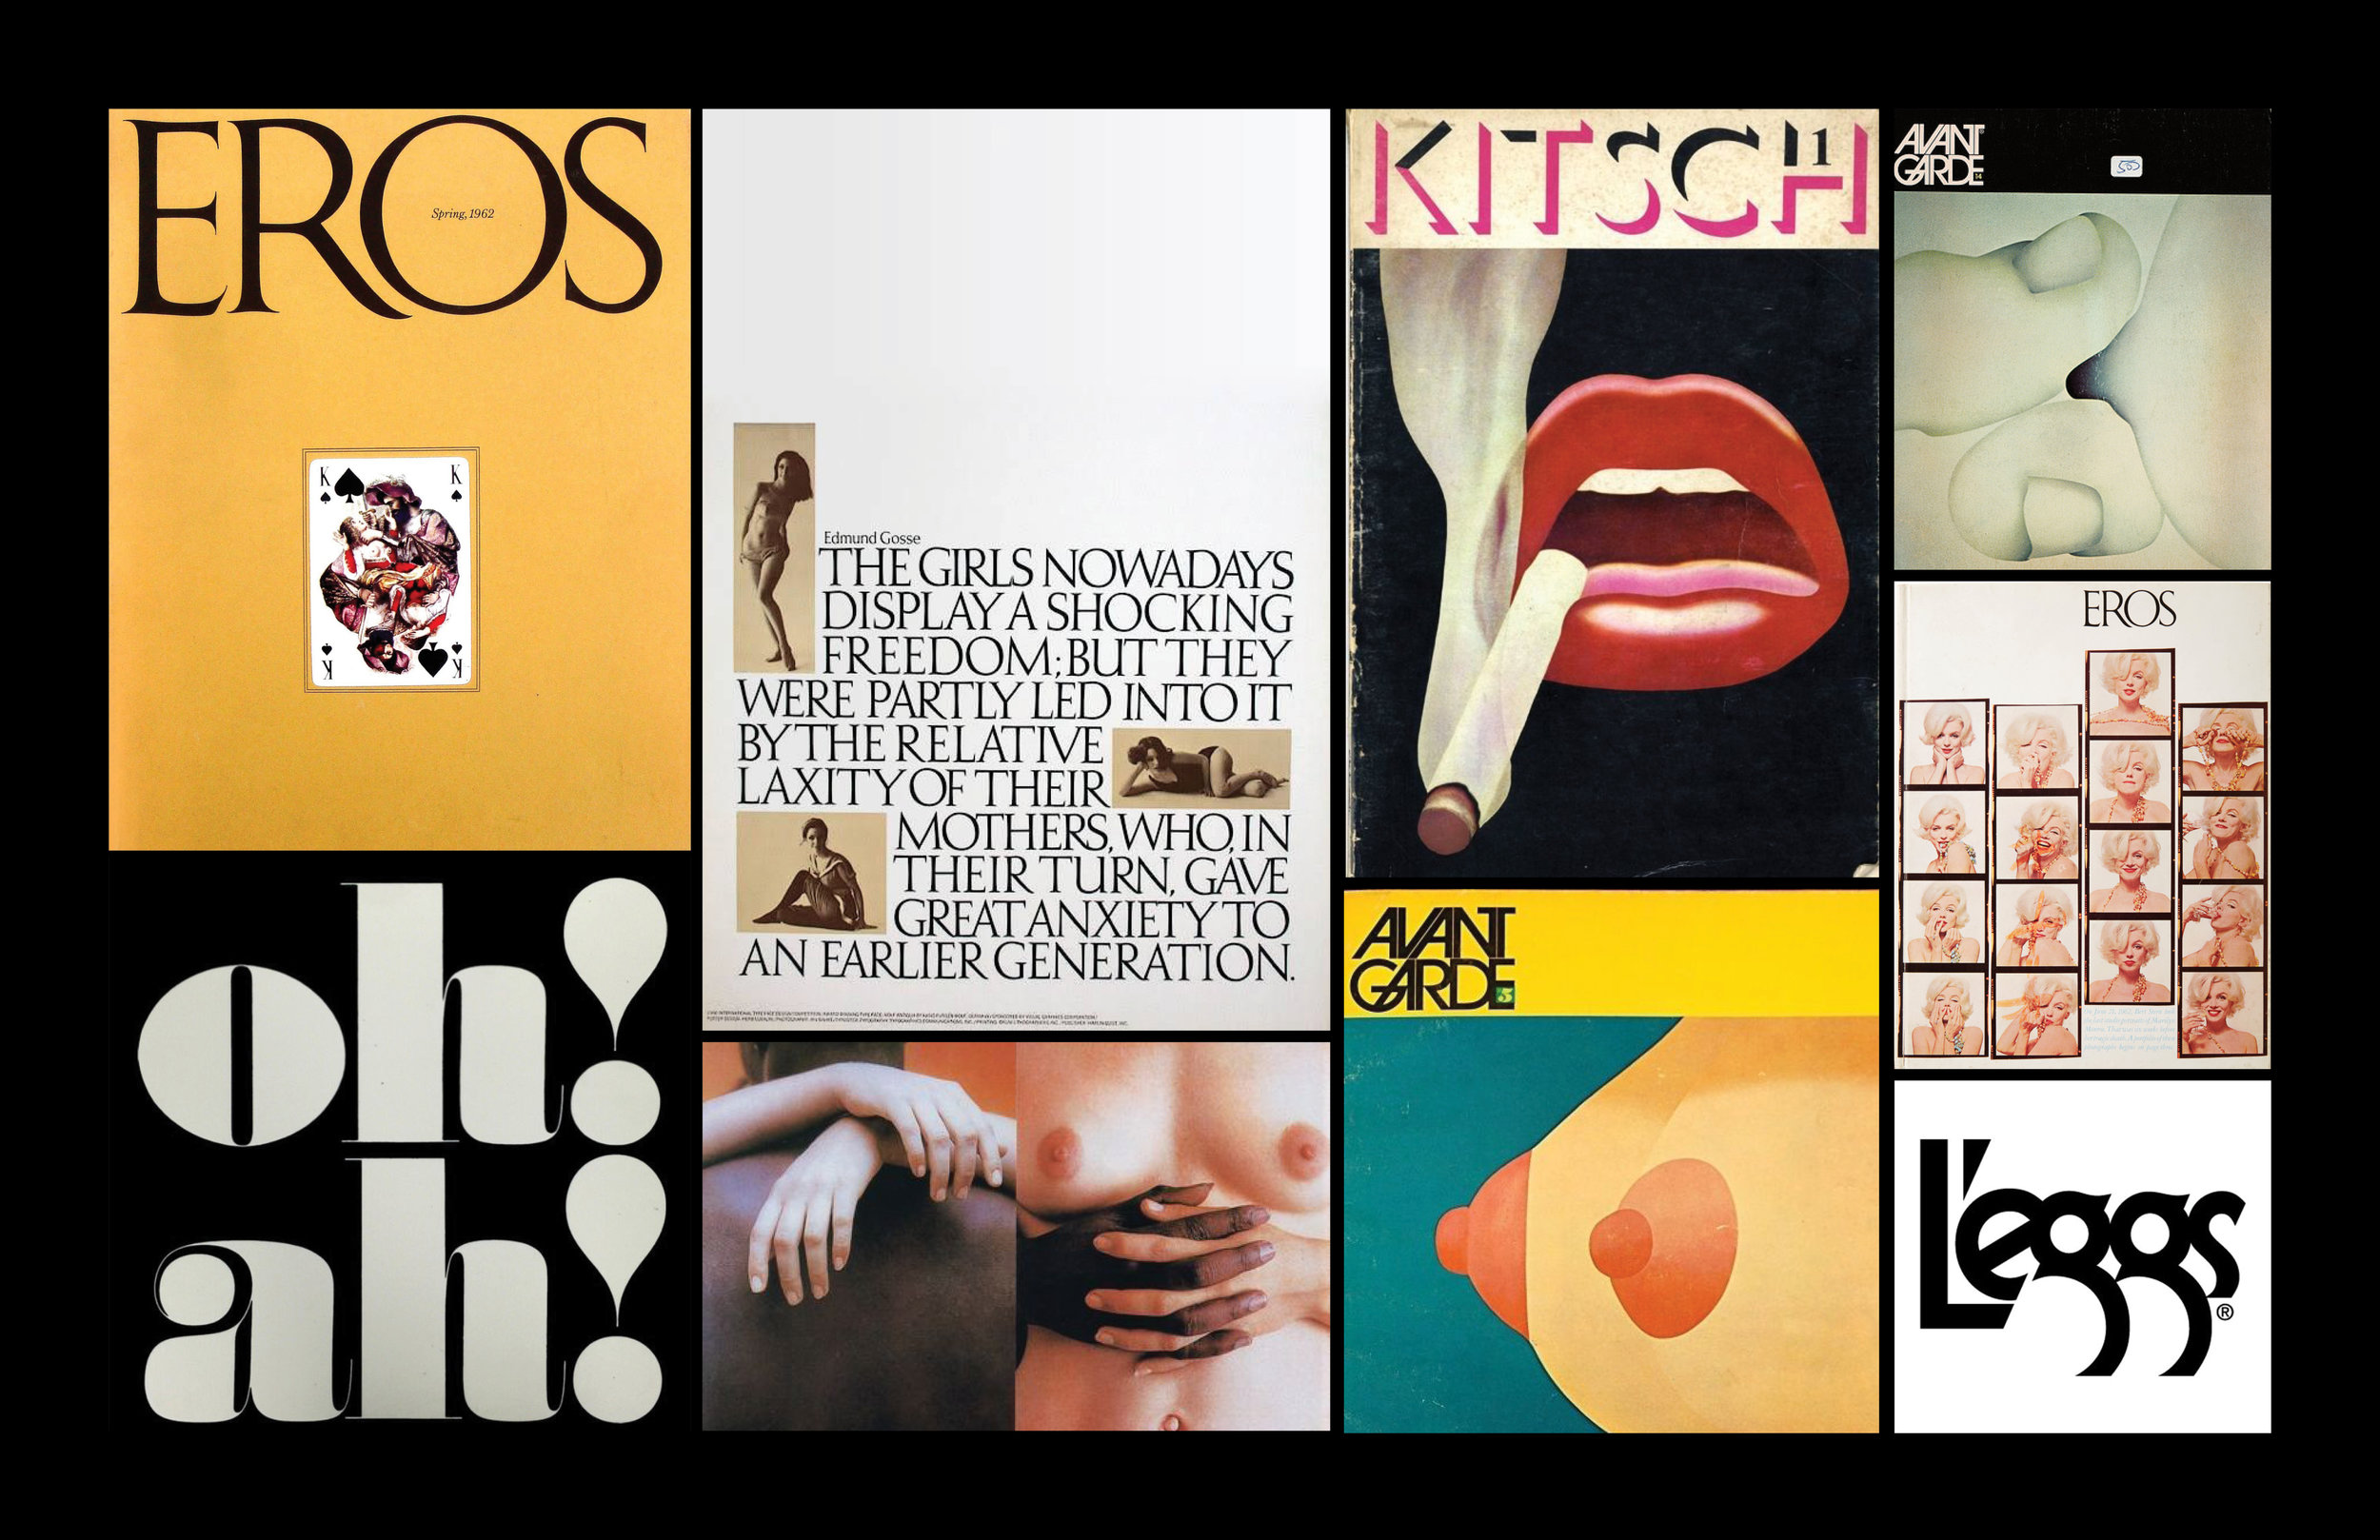 The highbrow erotic publications of Ralph Ginzburg (Eros, Avant Garde and Fact: magazine) featuring art direction by legendary typographer Herb Lubalin